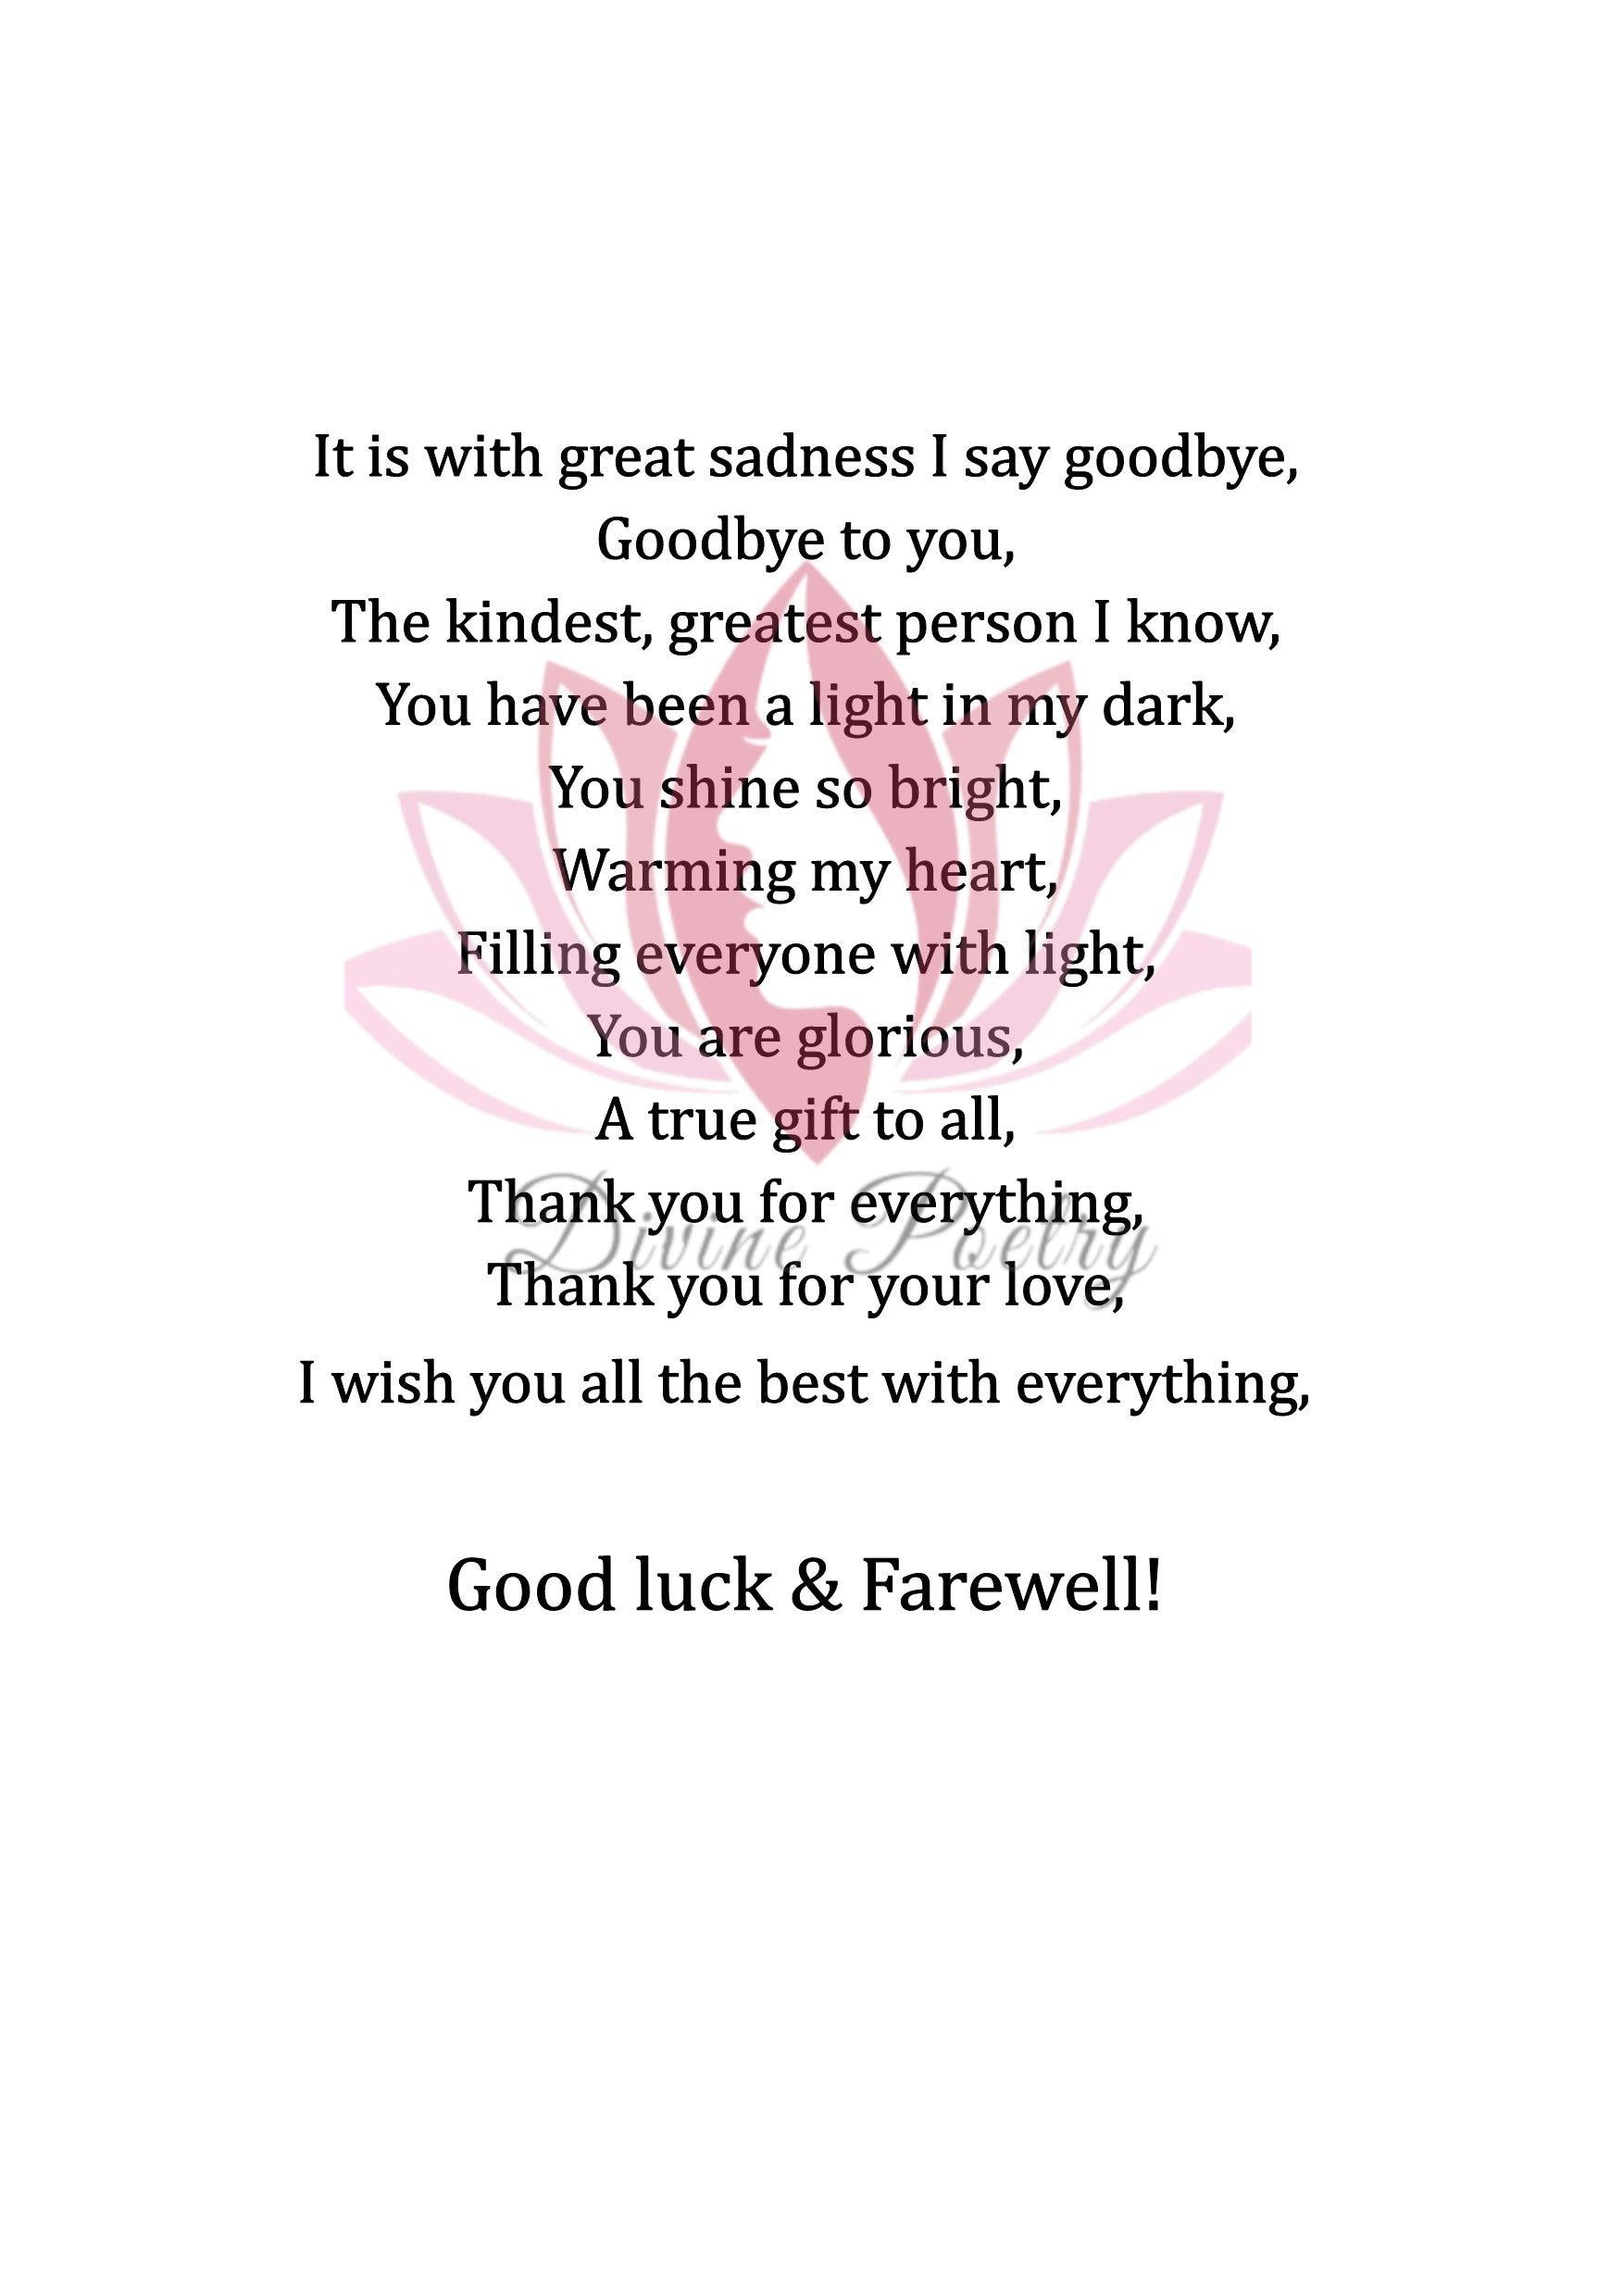 Farewell - Divine Poetry